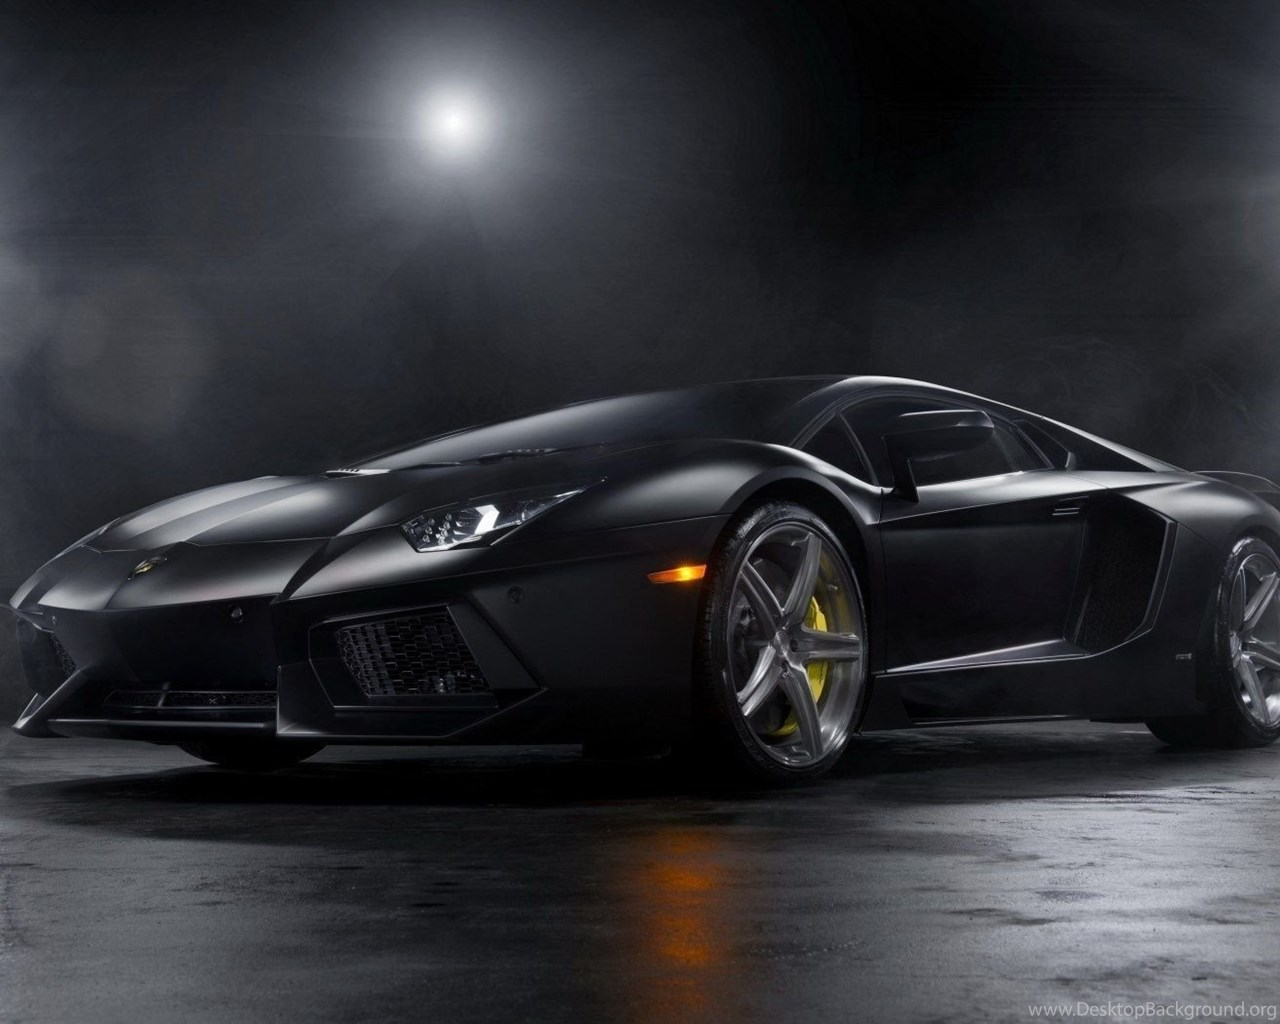 Matte Black Lamborghini Aventador Wallpapers Desktop Background